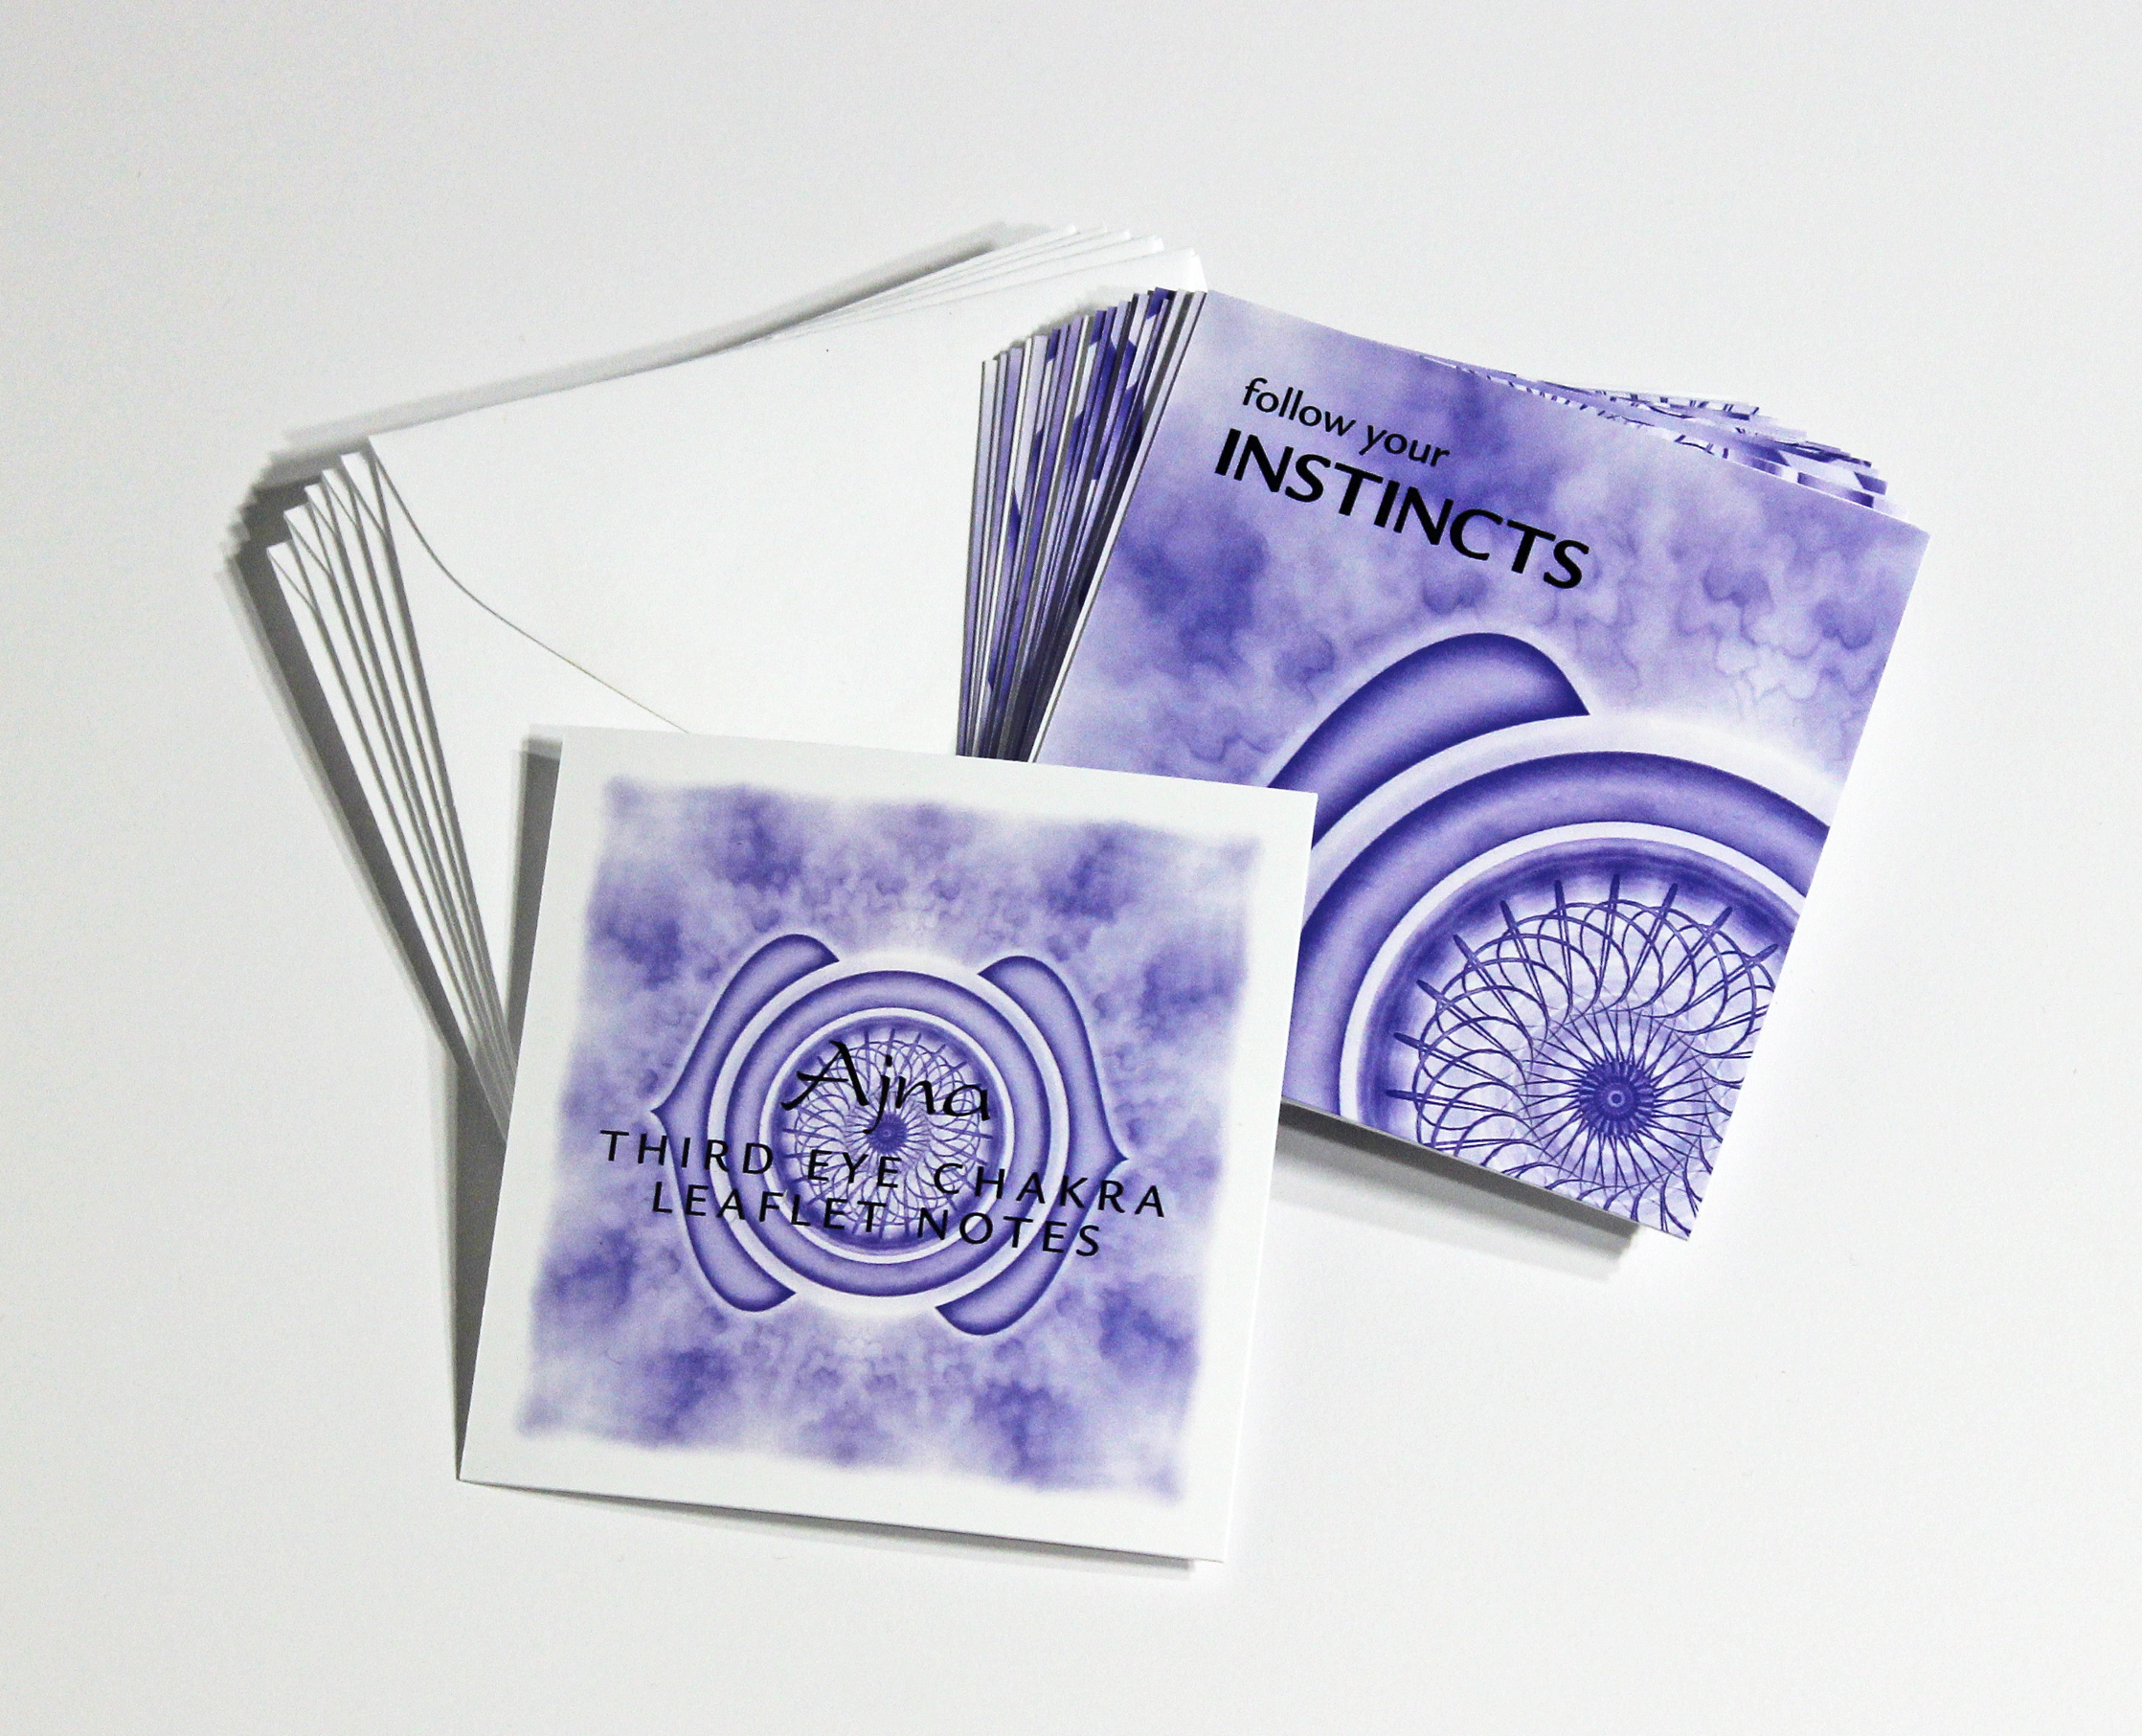 THIRD EYE   CHAKRA LEAFLET NOTES - $18  Imagine the impossible and then set out to make the impossible possible with our tiny Third Eye Chakra LeafLet Notes.